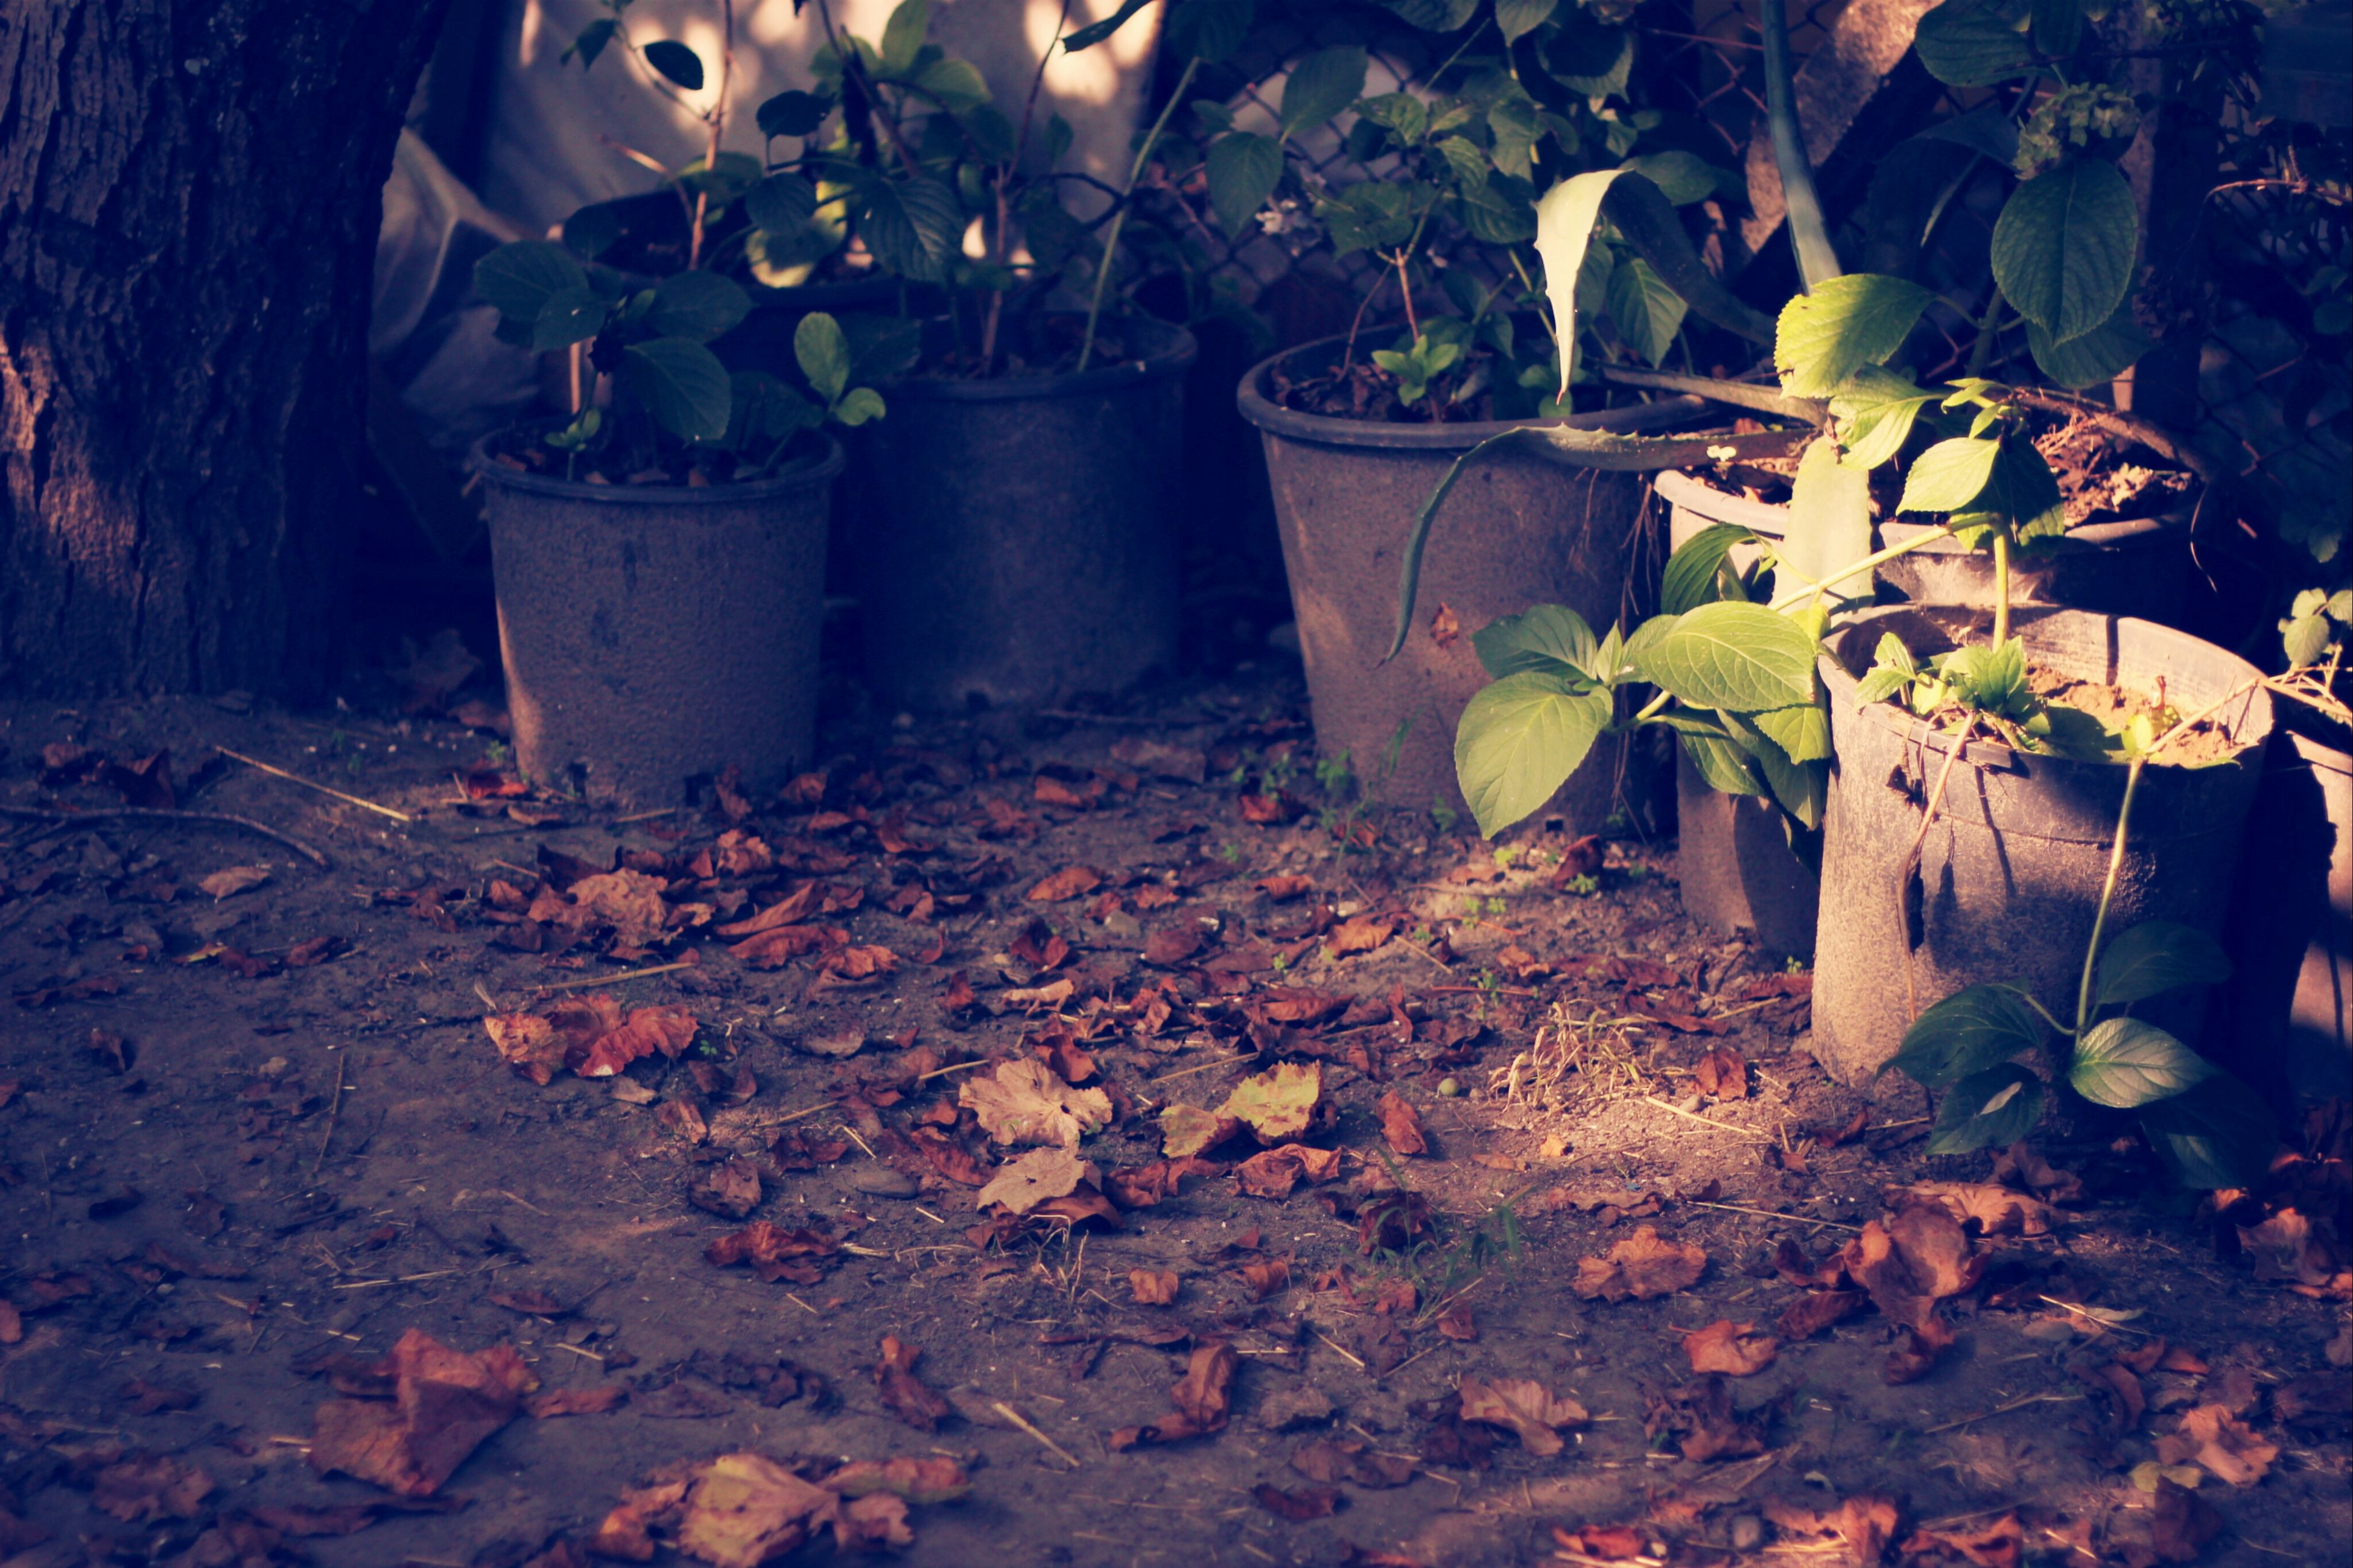 leaf, plant, growth, nature, fallen, leaves, front or back yard, potted plant, dry, autumn, outdoors, no people, day, tree, messy, sunlight, tree trunk, change, built structure, wood - material